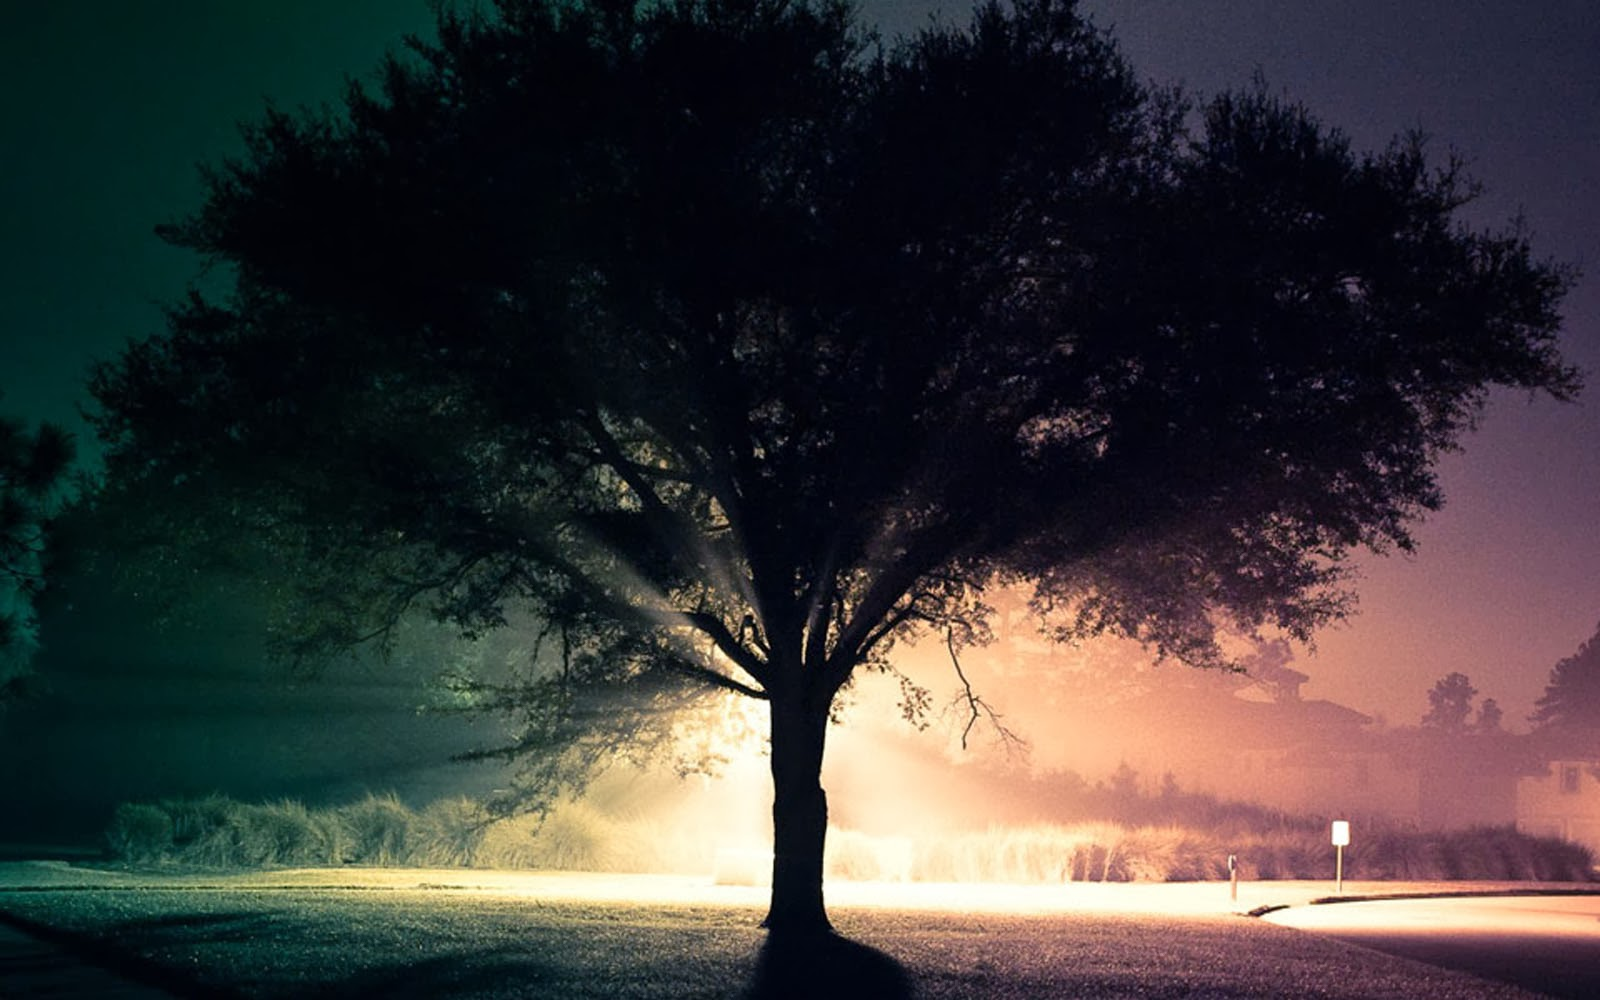 wallpapers: Trees In The Mist